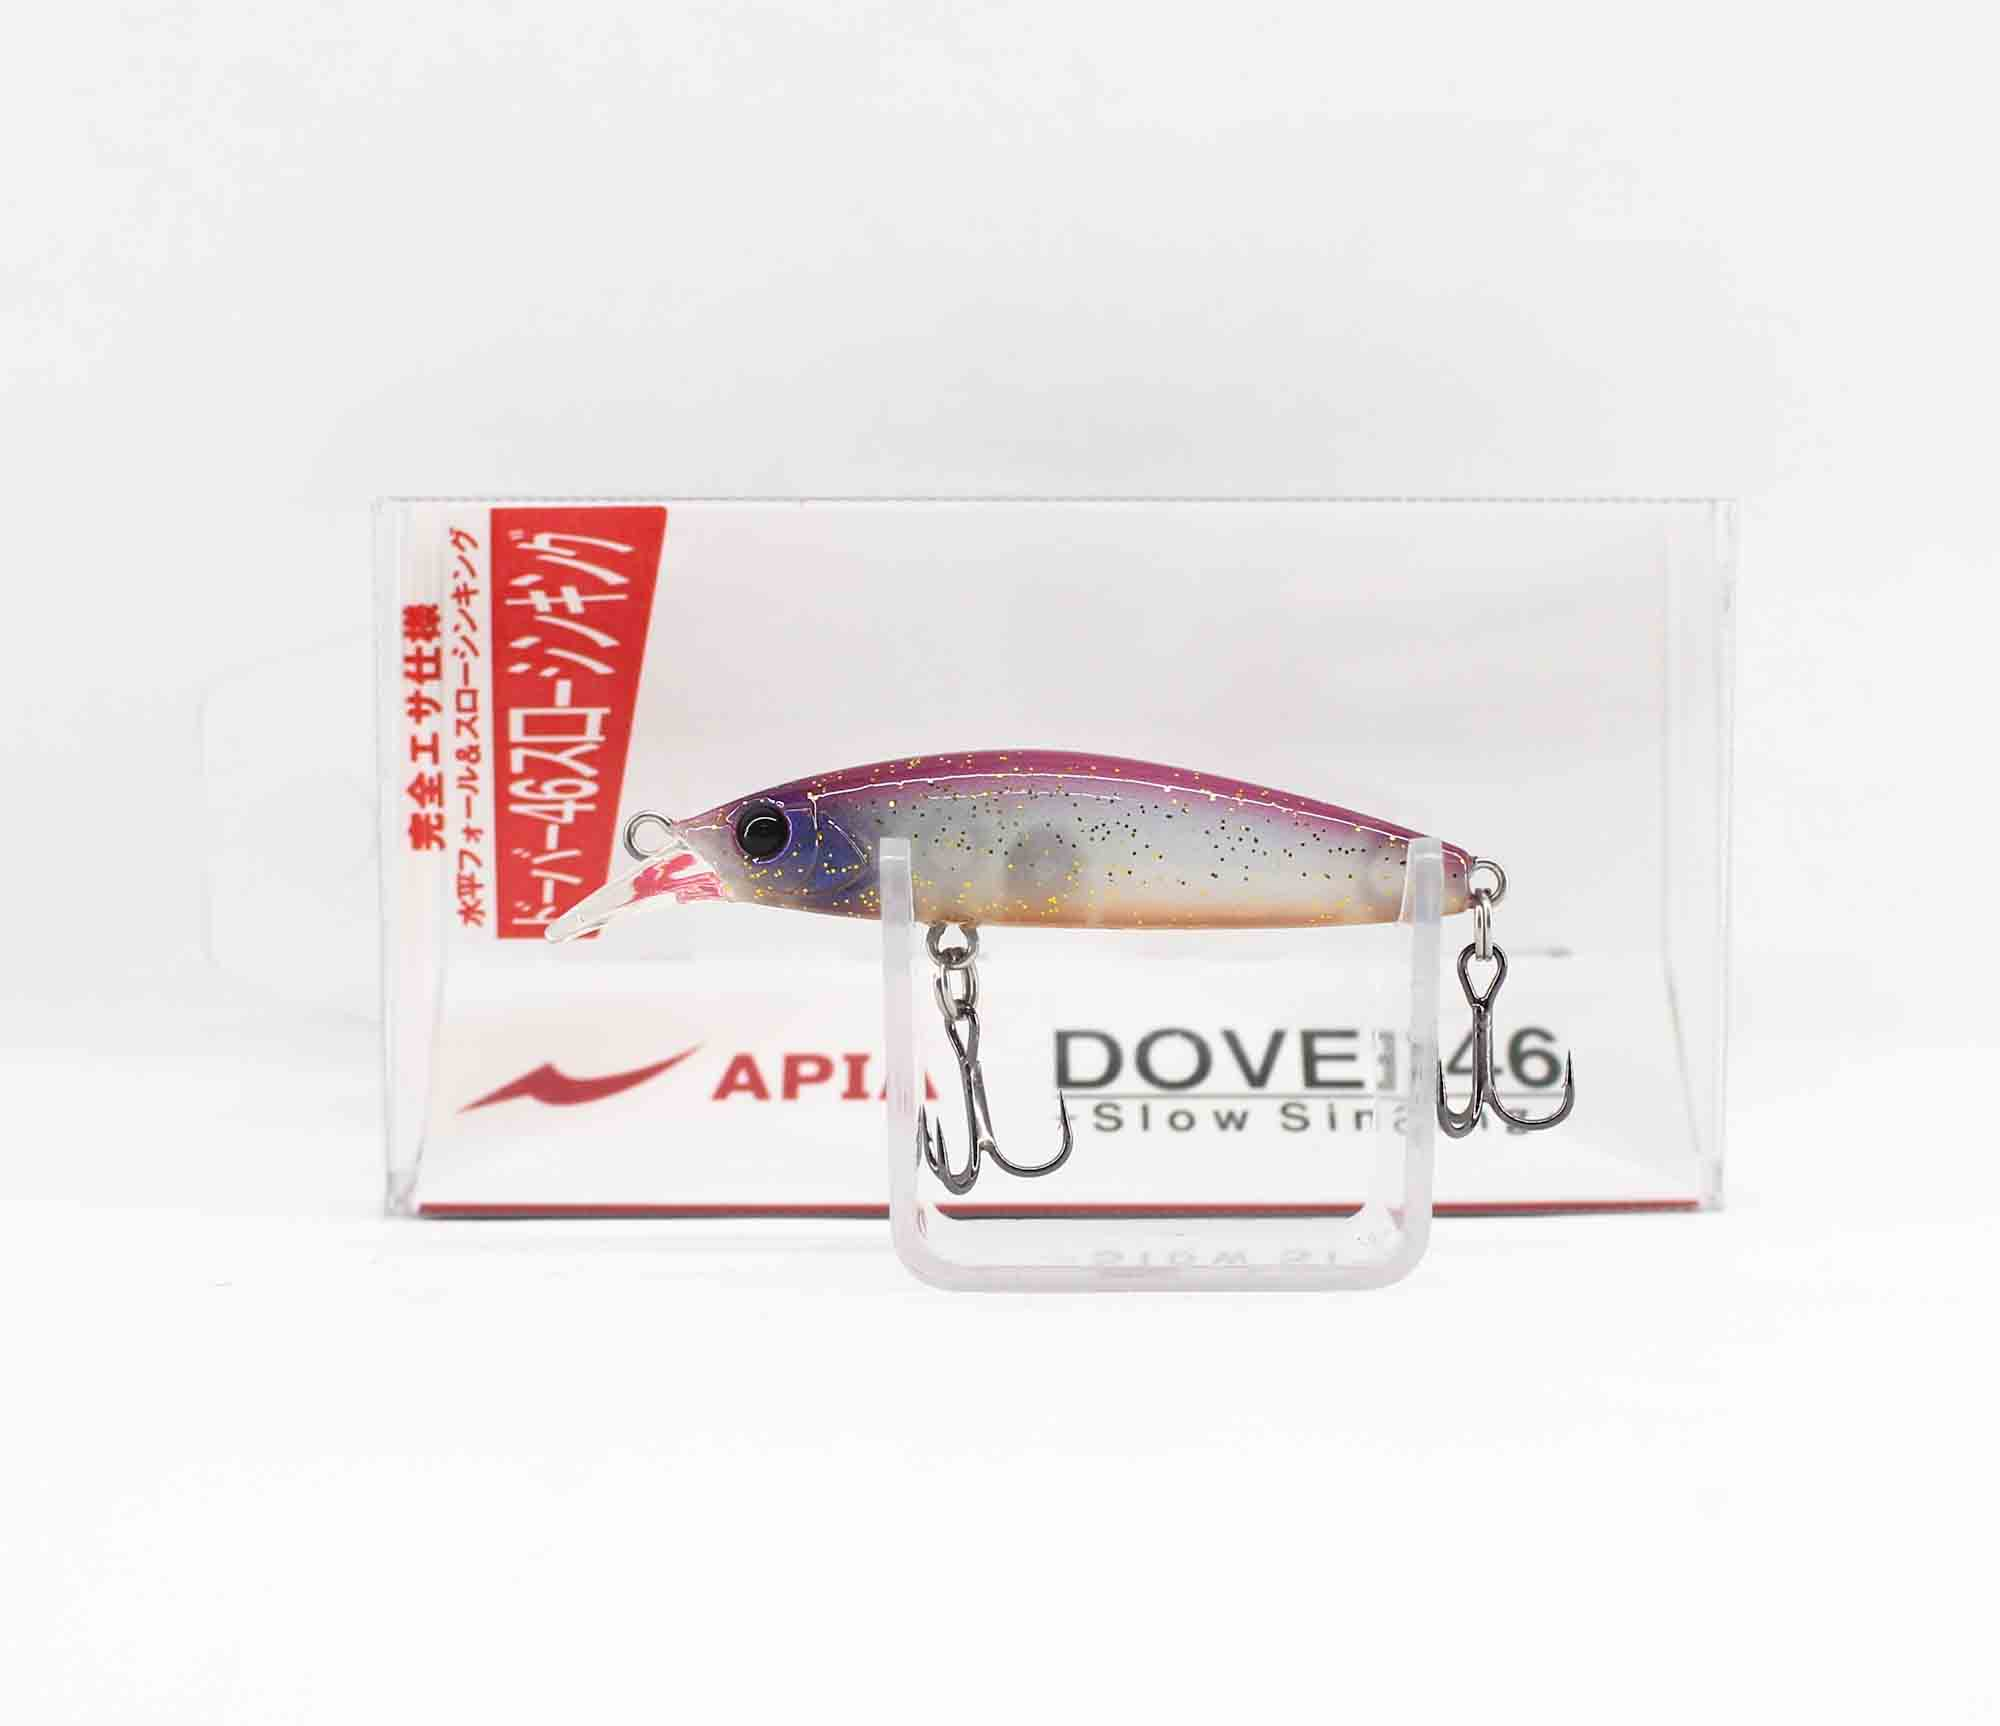 Apia Dover 46 SS Sinking Lure 09 (8559)